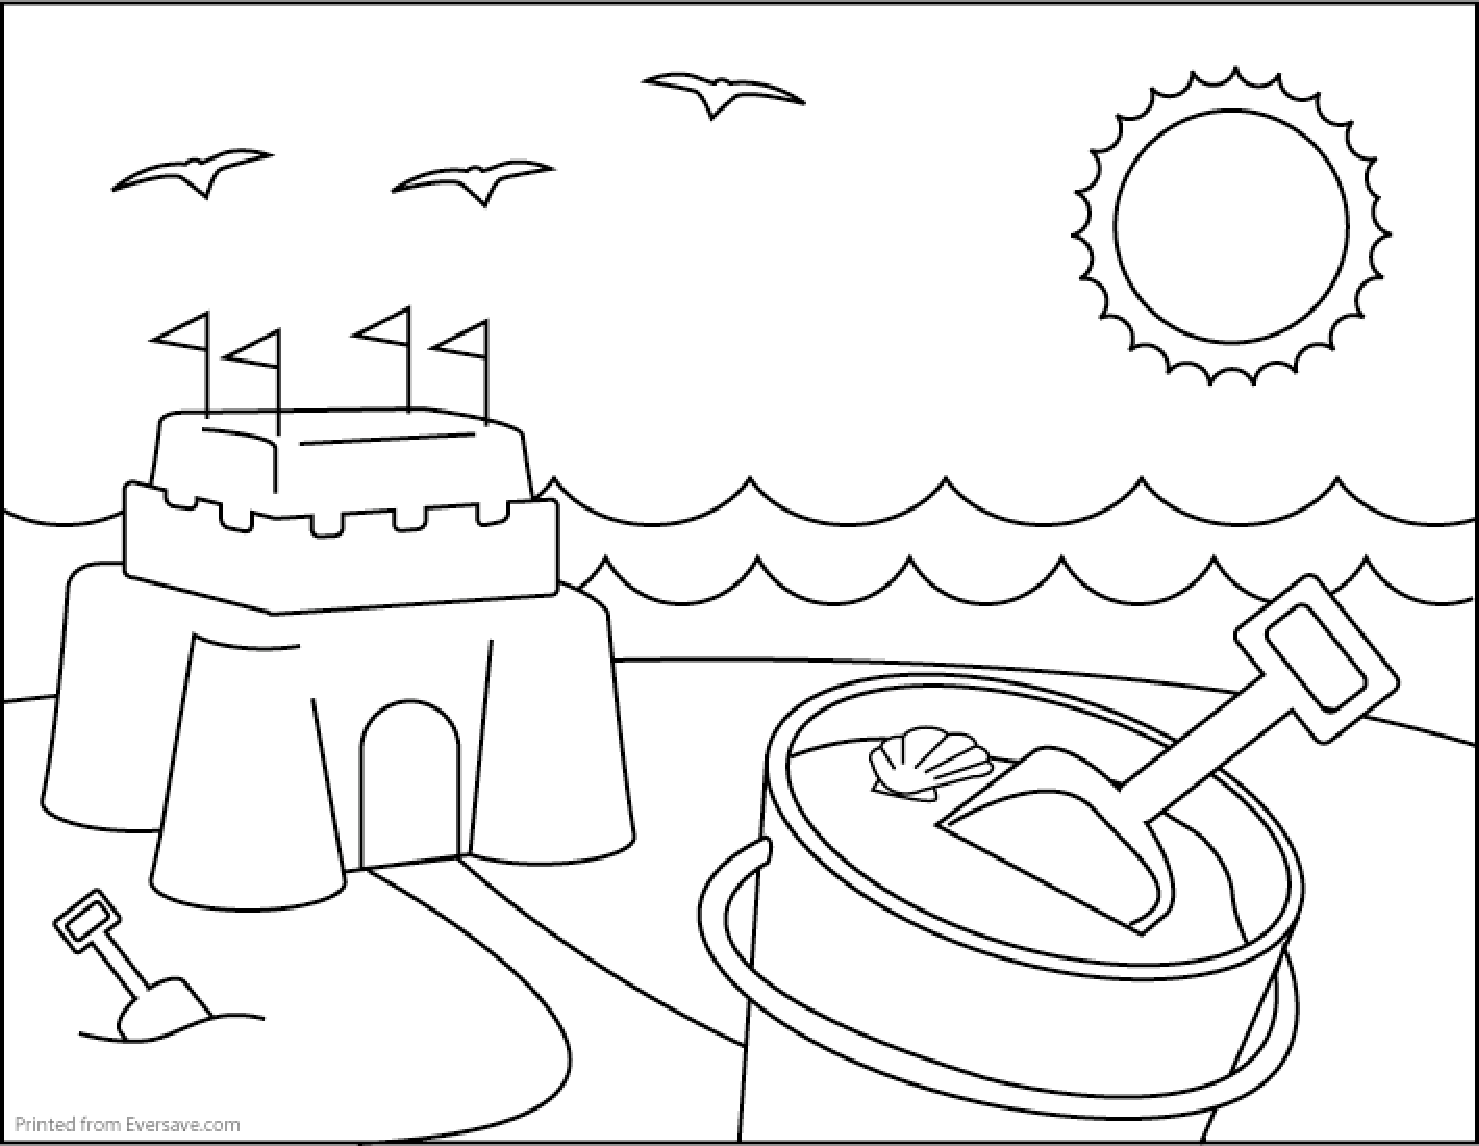 Elegant Summer Coloring Pages Printable 23 On Coloring Pages For